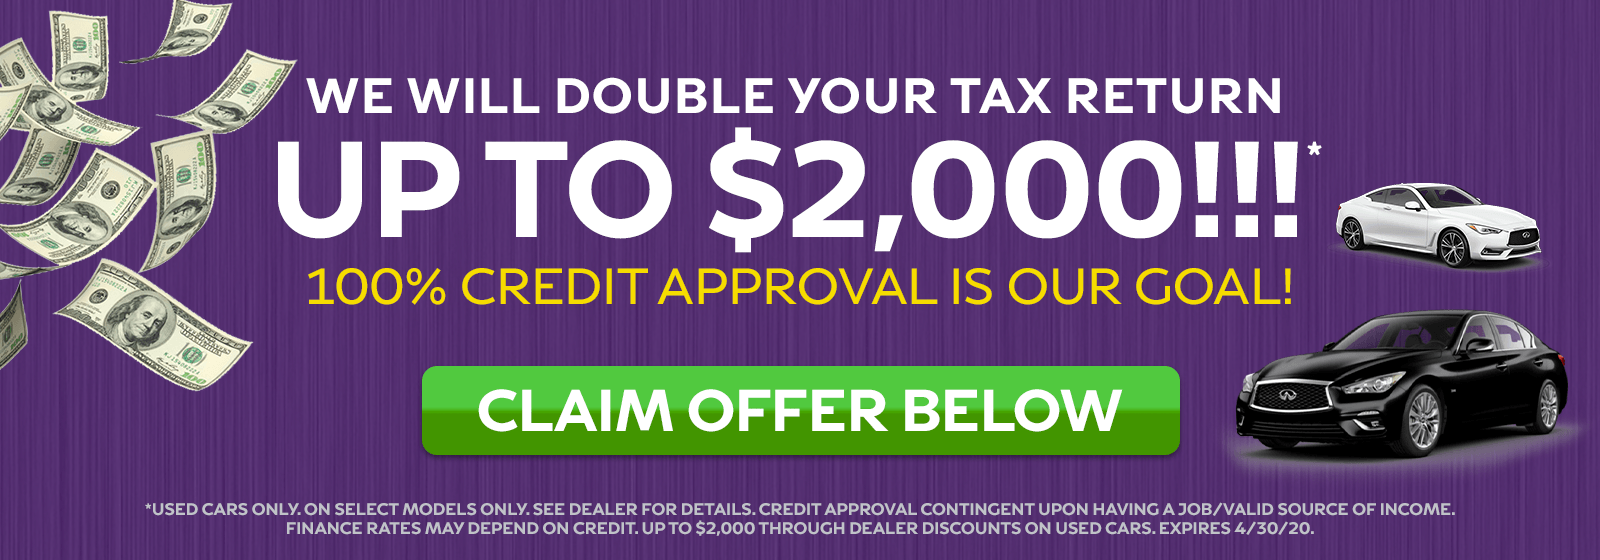 WE WILL DOUBLE YOUR TAX RETURN UP TO $2,000!!!